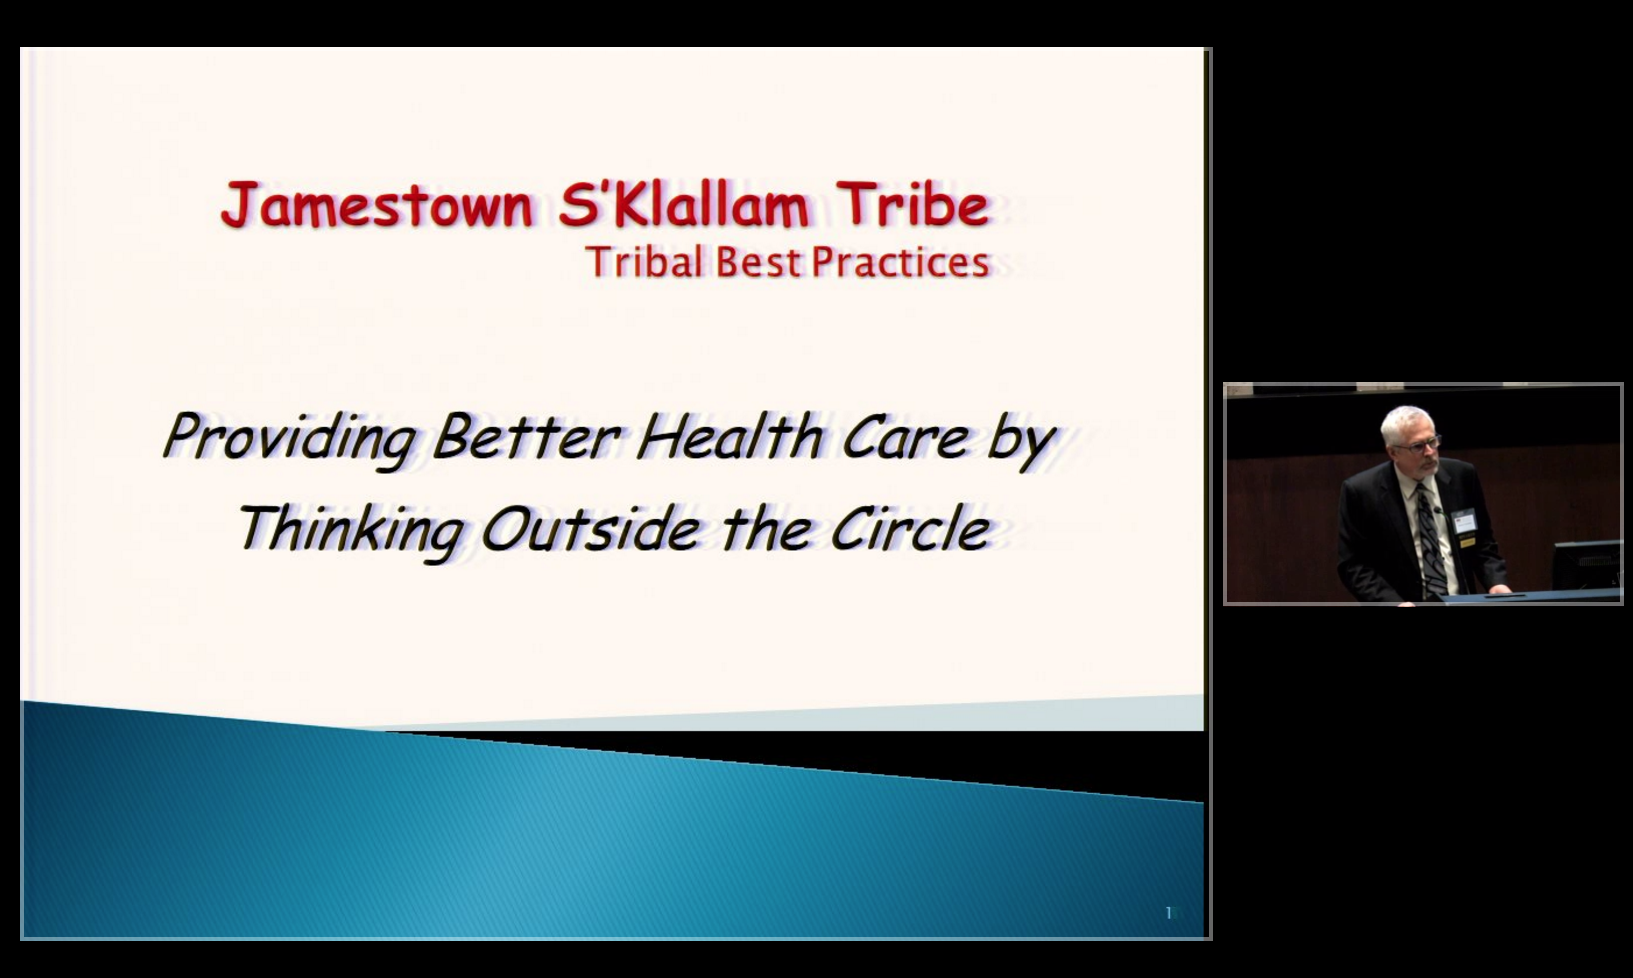 Economic/Political impact of tribal health programs on/off reservation